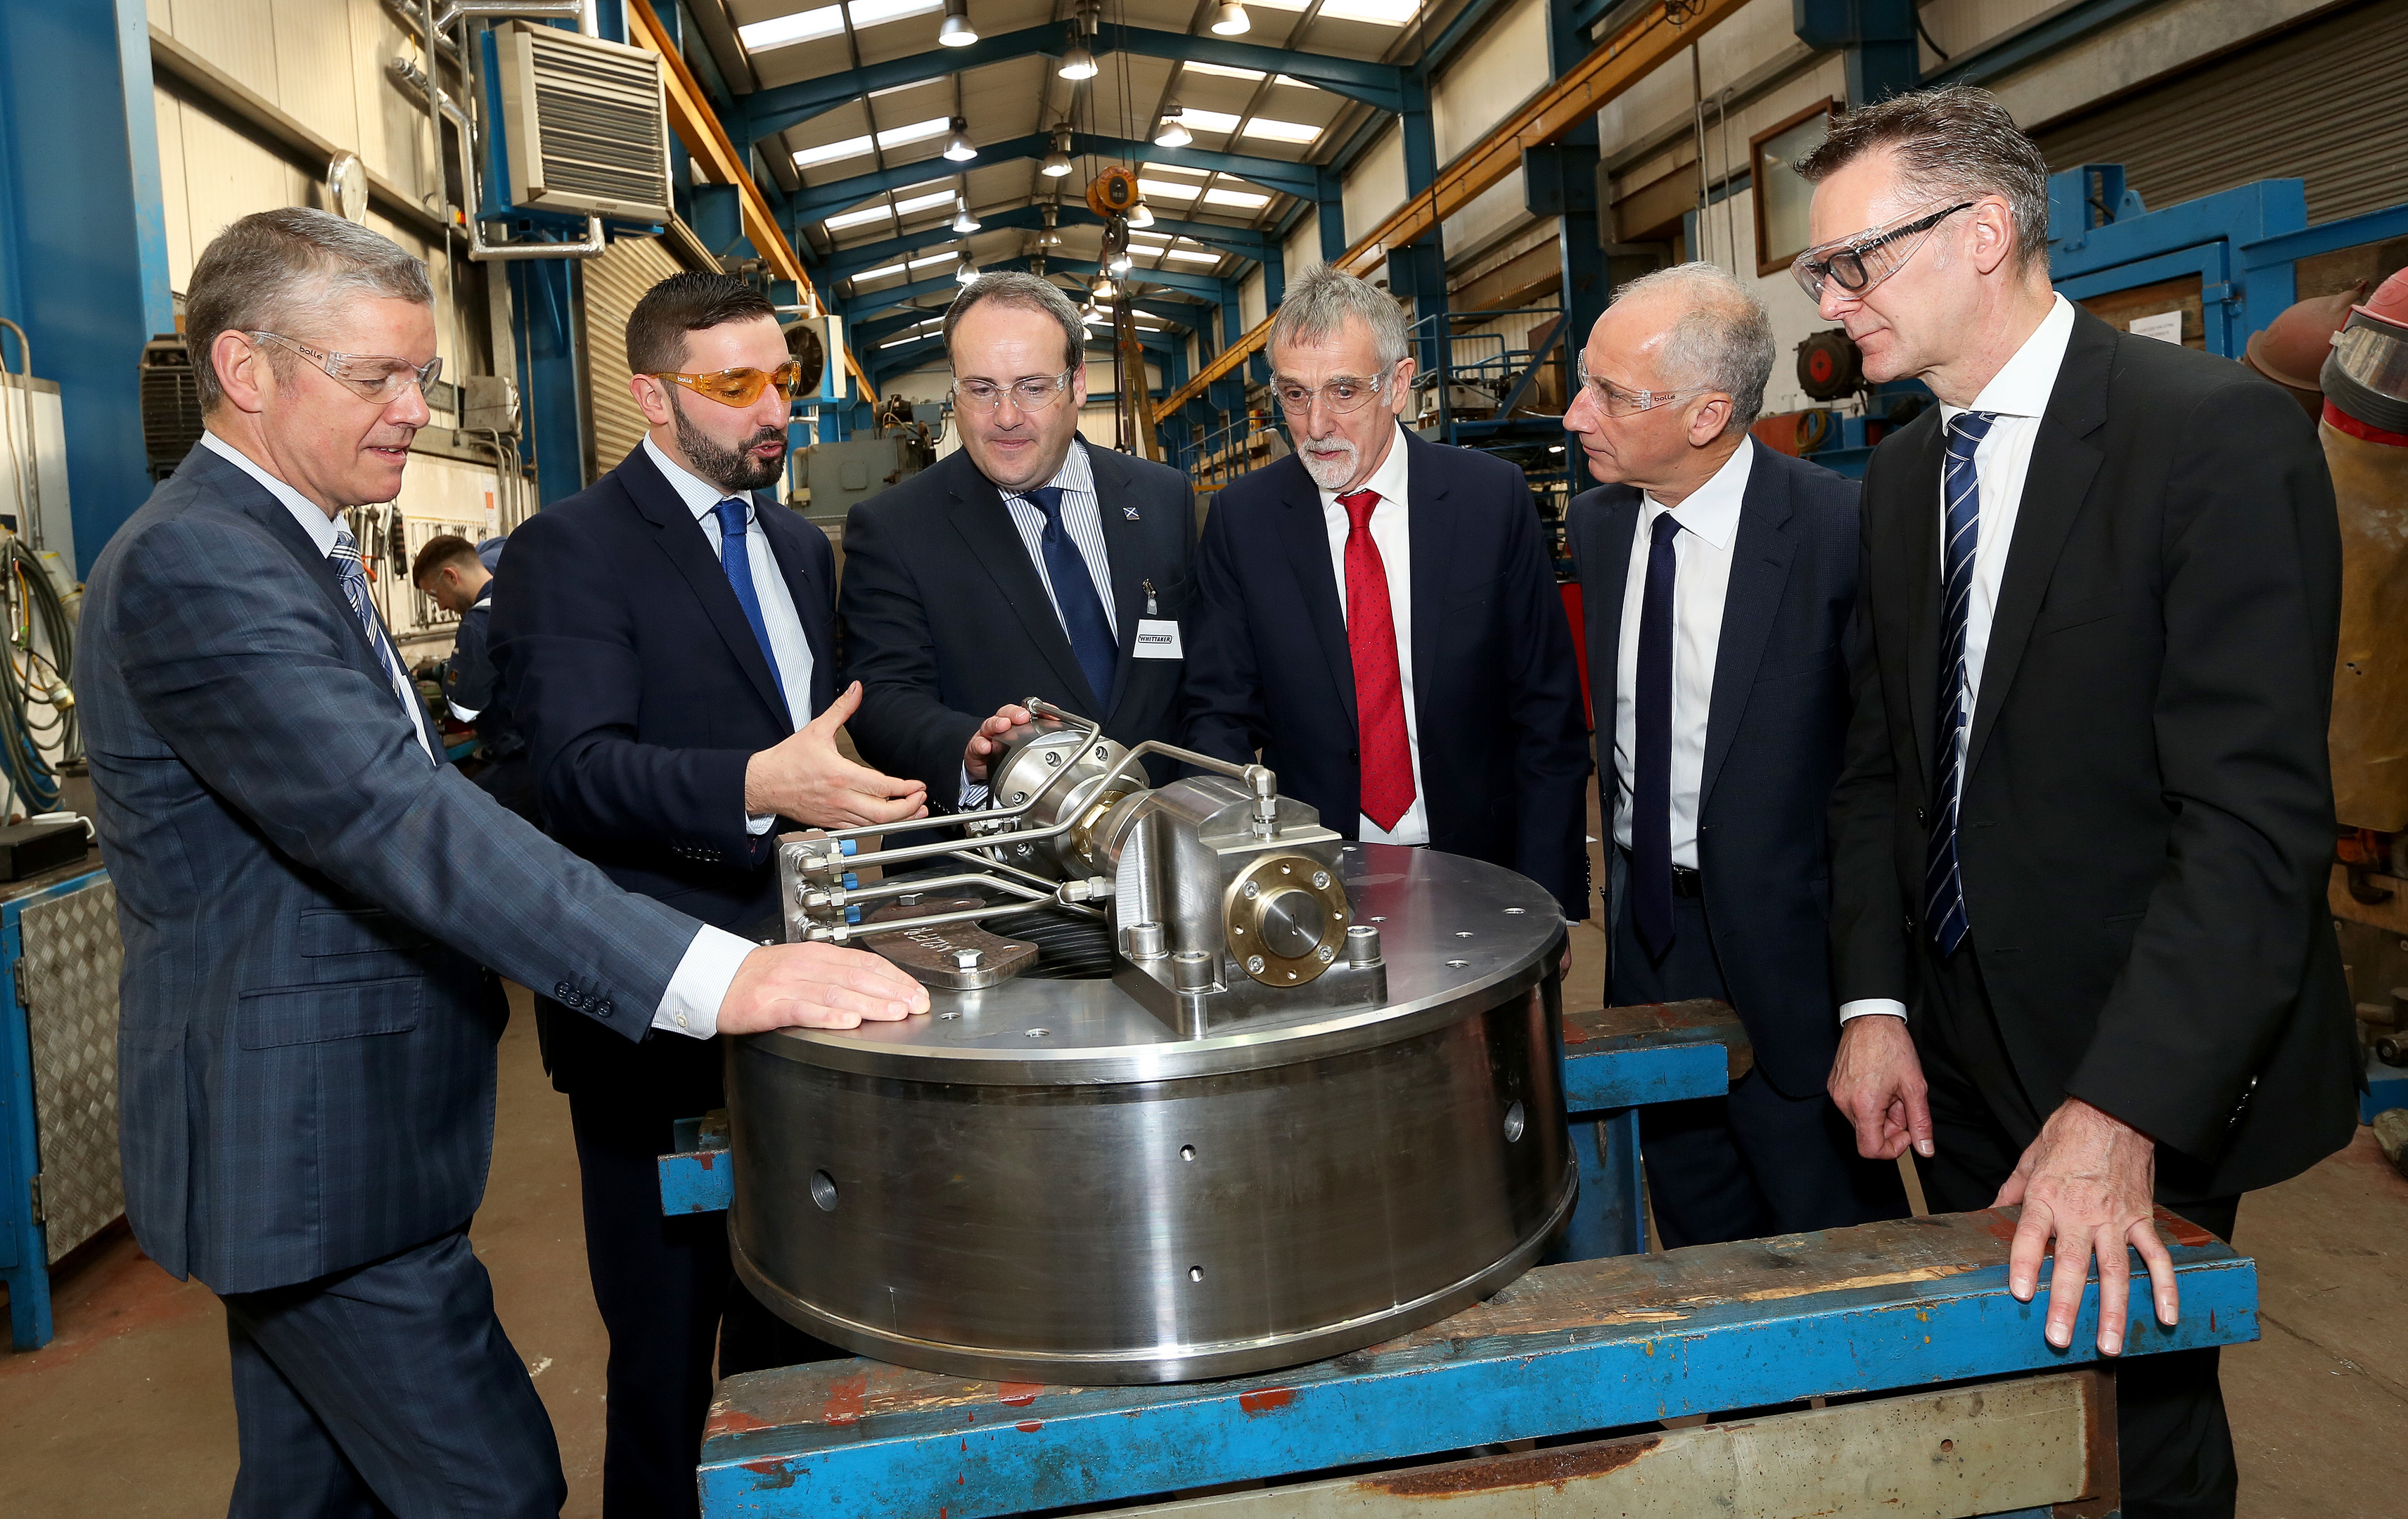 Energy minister Paul Wheelhouse, third from left, made the announcement during a visit to Whittaker Engineering near Stonehaven